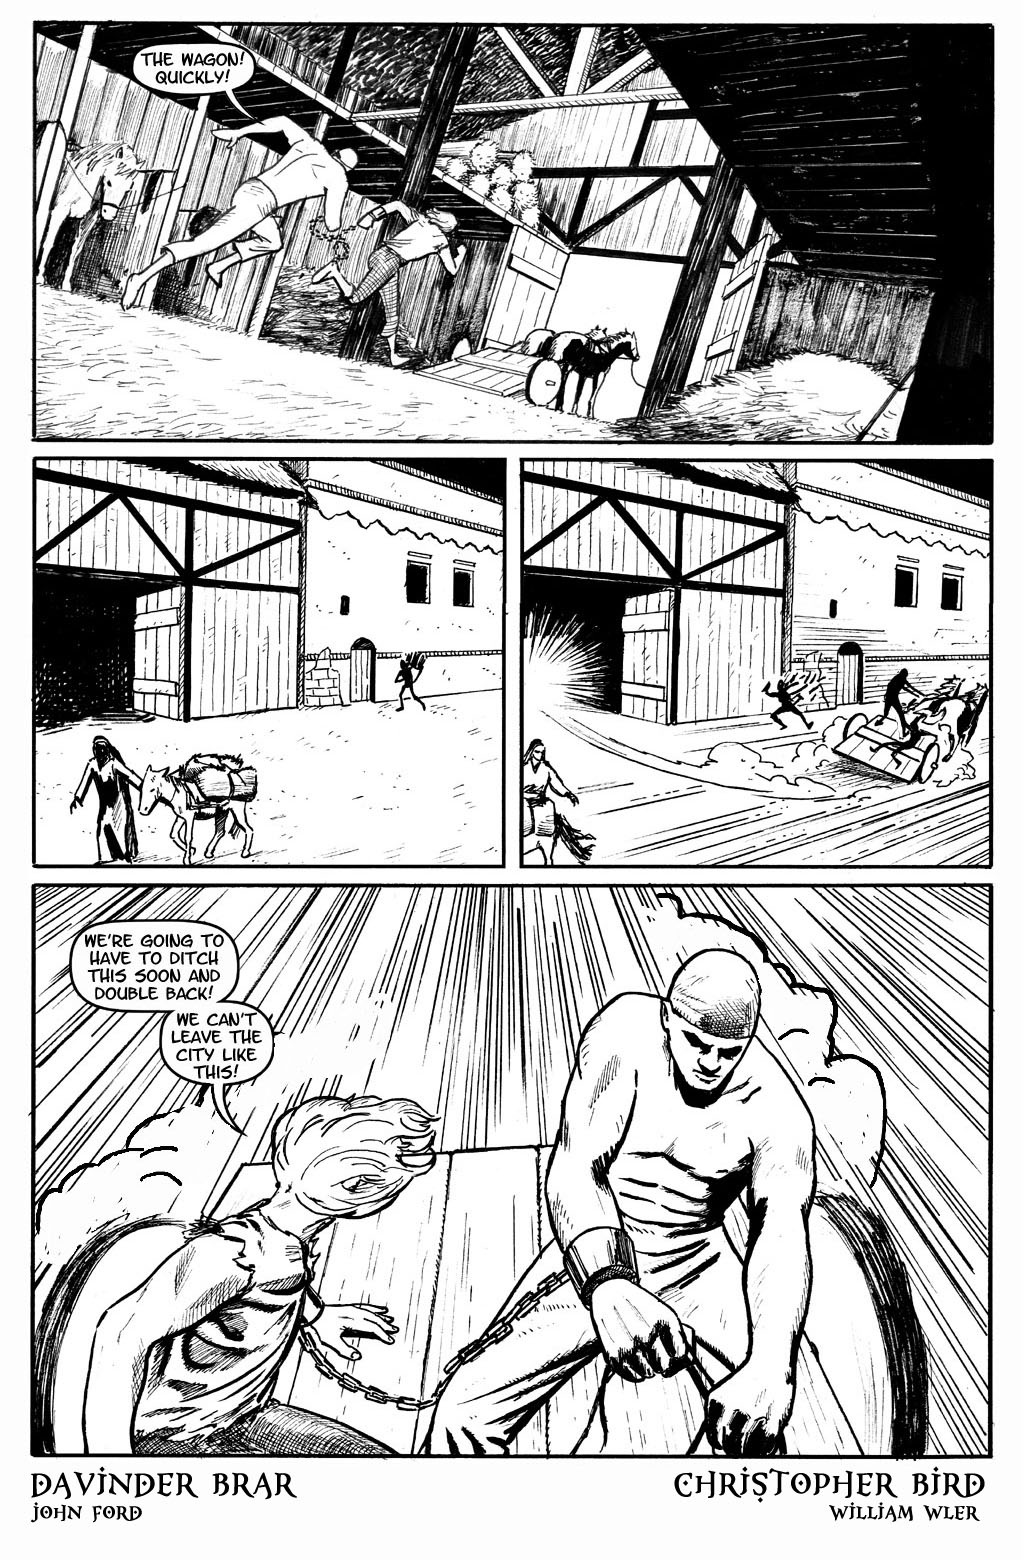 Book 2, page 27